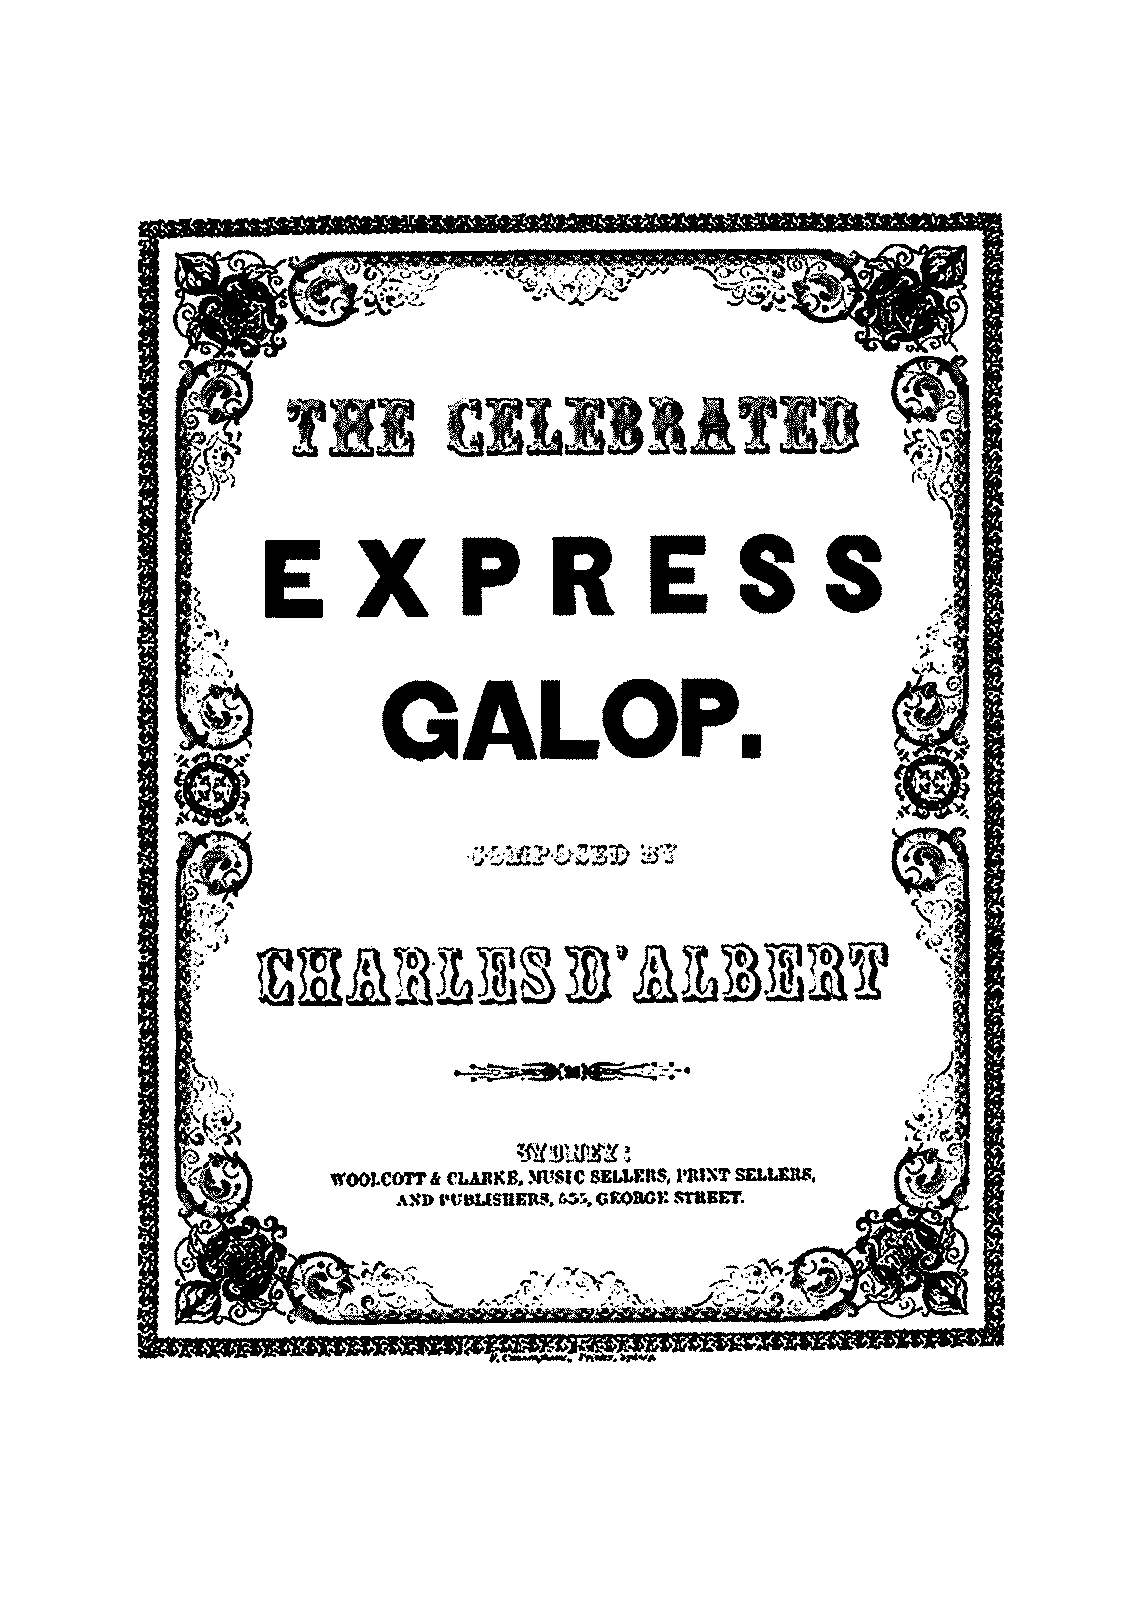 PMLP342504-Albert, Charles Louis Napoleon d' - 1809-1886 - The Express Galop.pdf